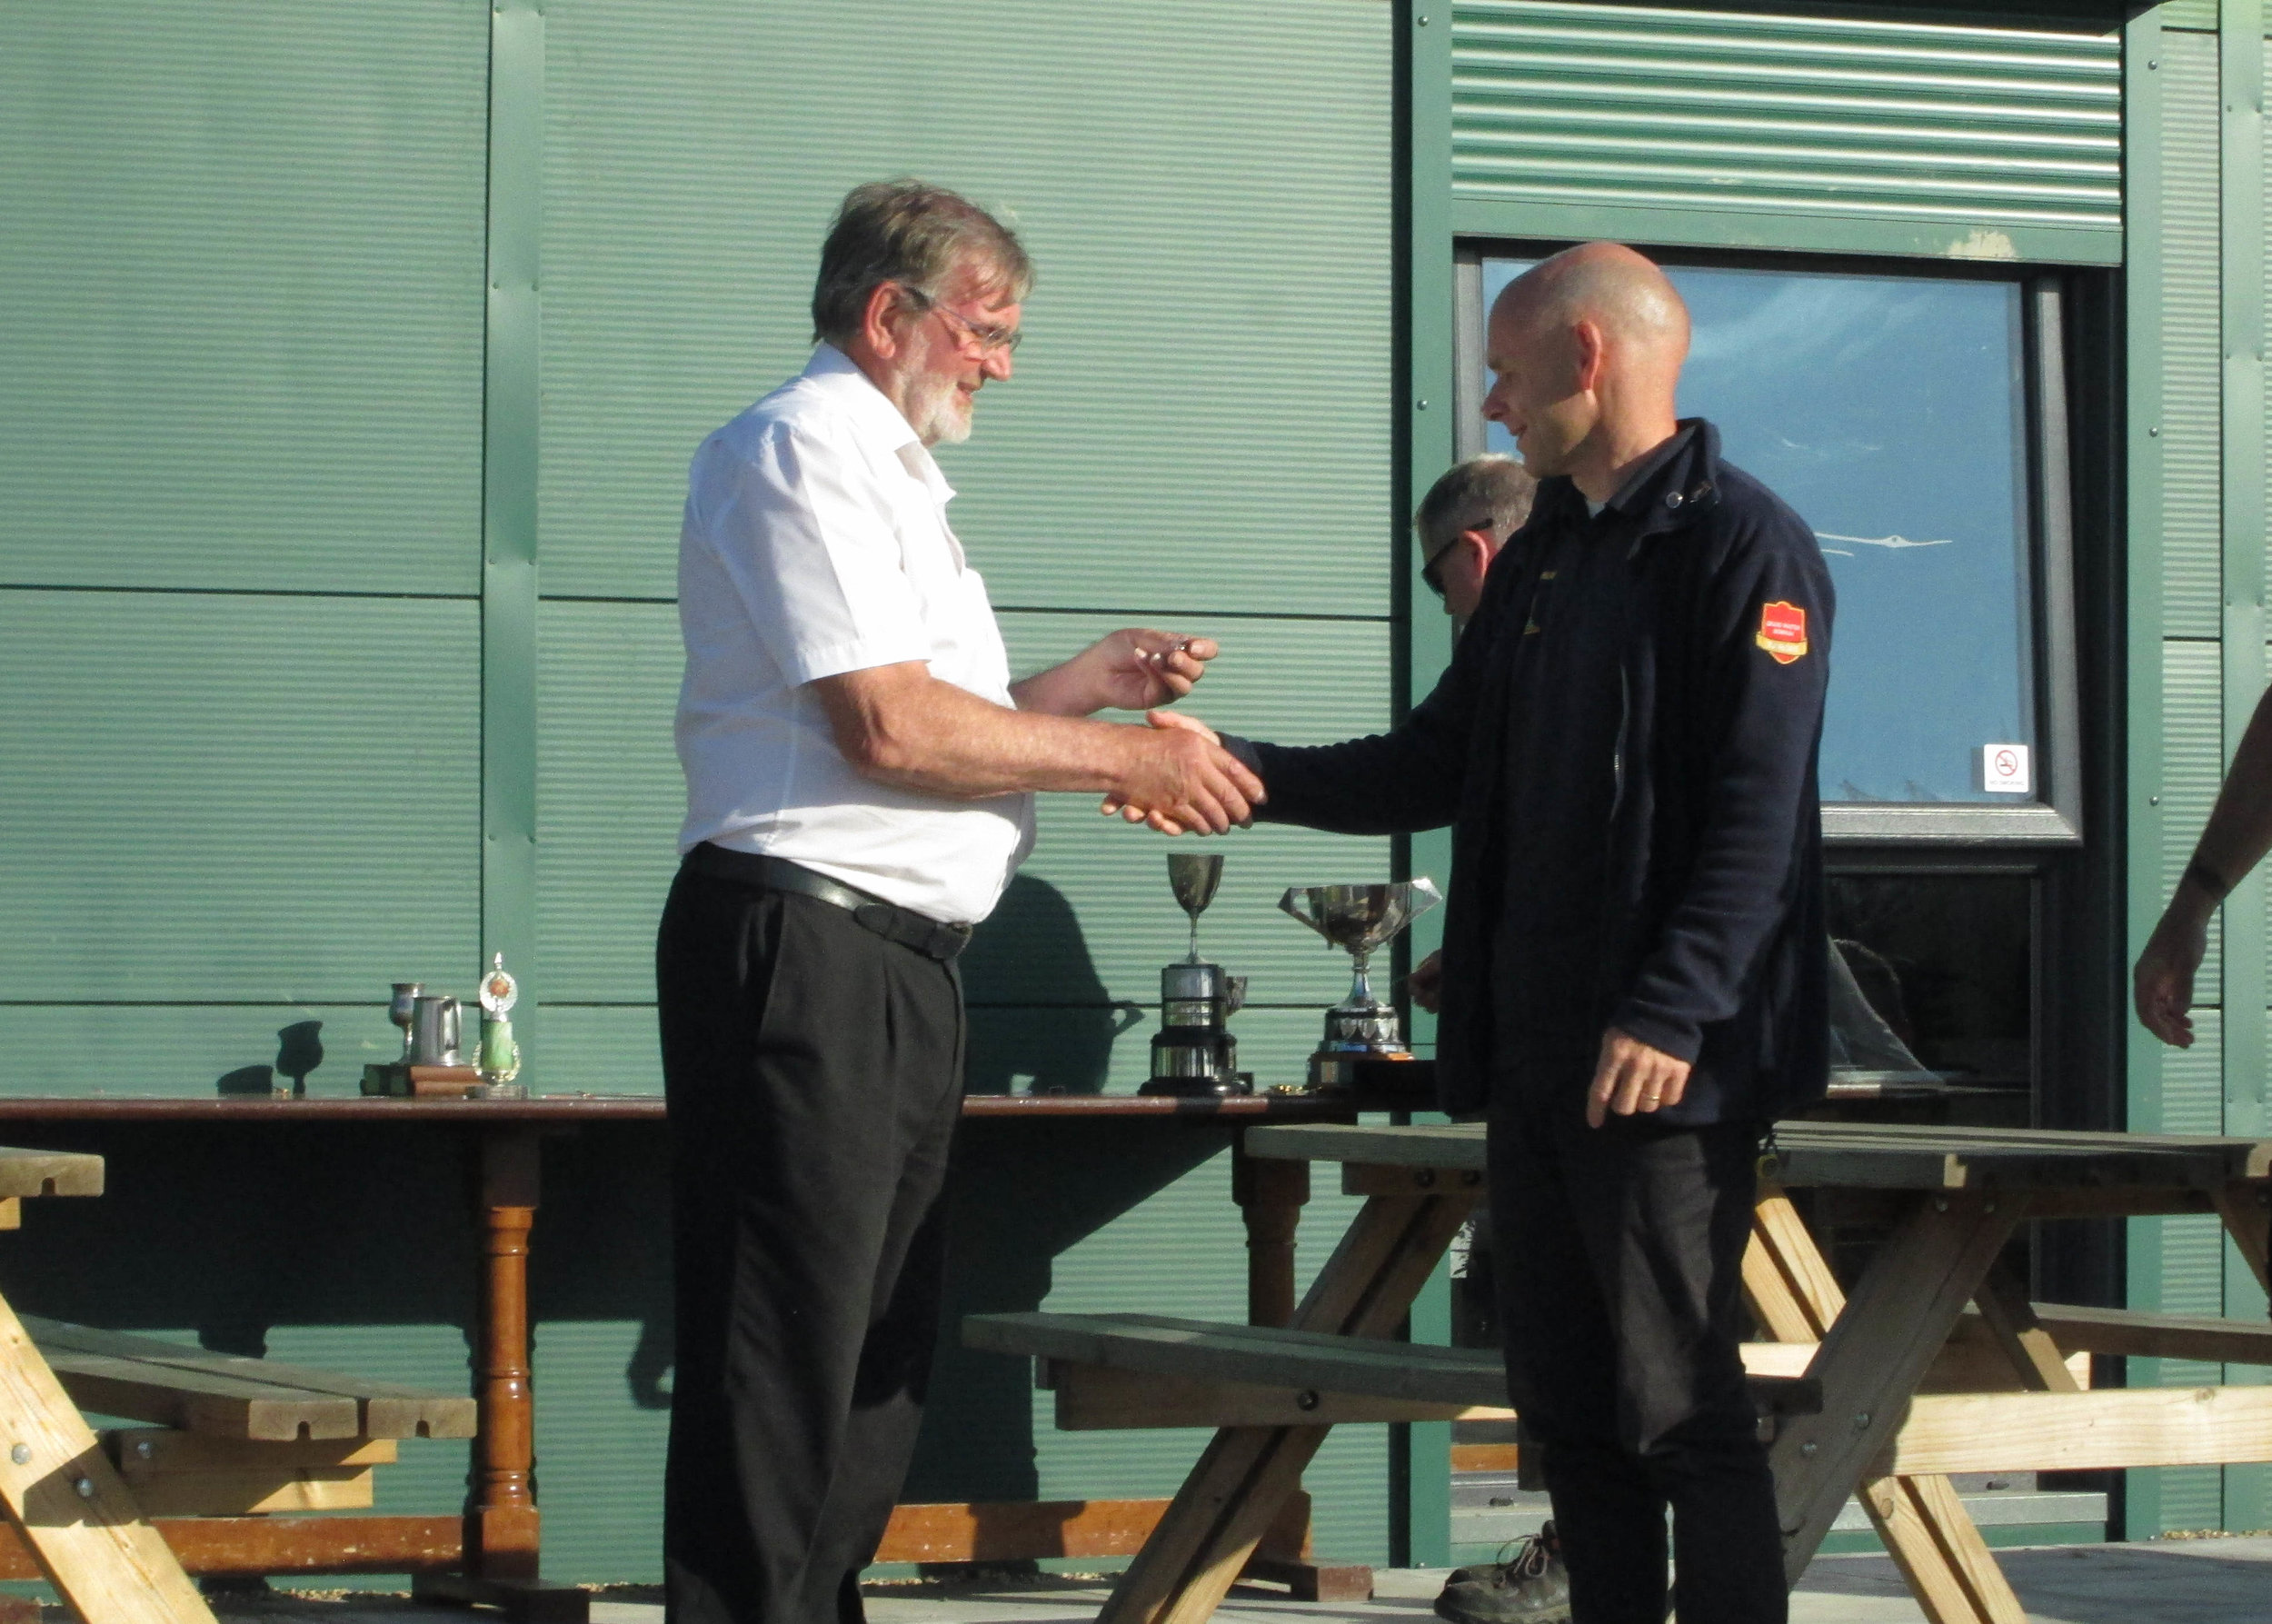 Mike Wo collecting his Silver